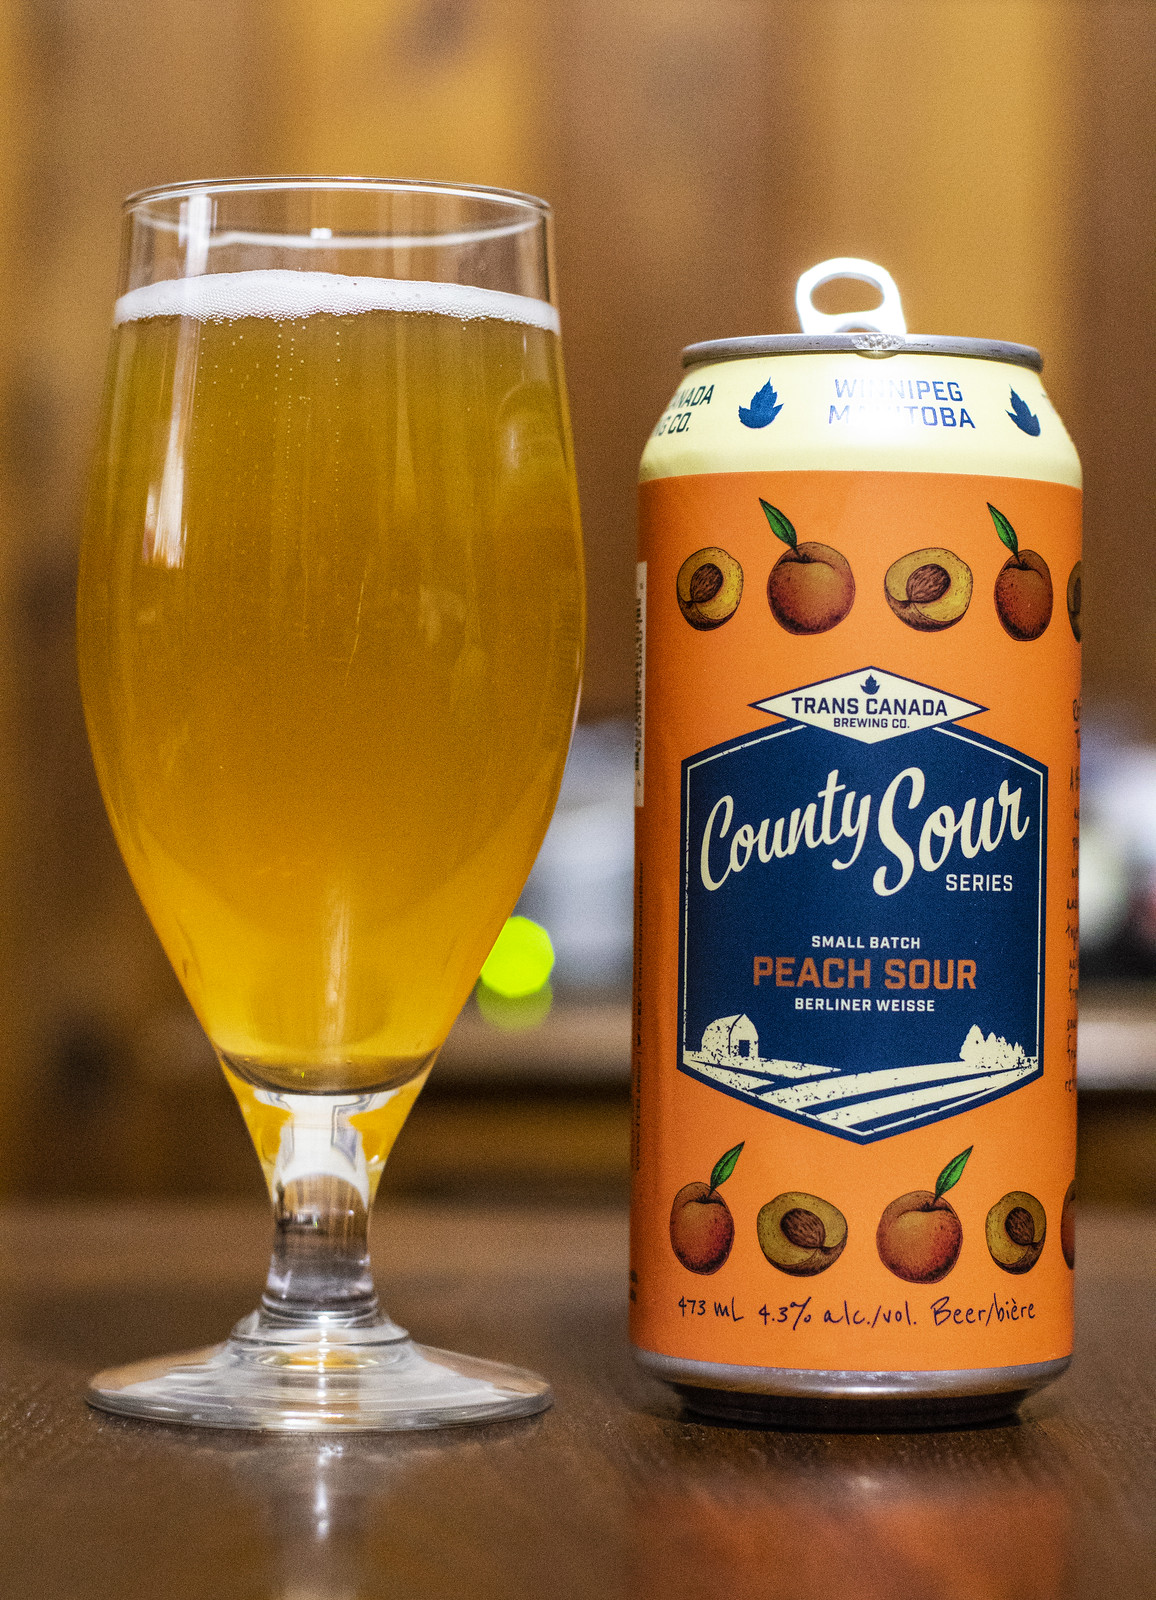 Trans Canada County Sour - Peach Sour Berliner Weisse